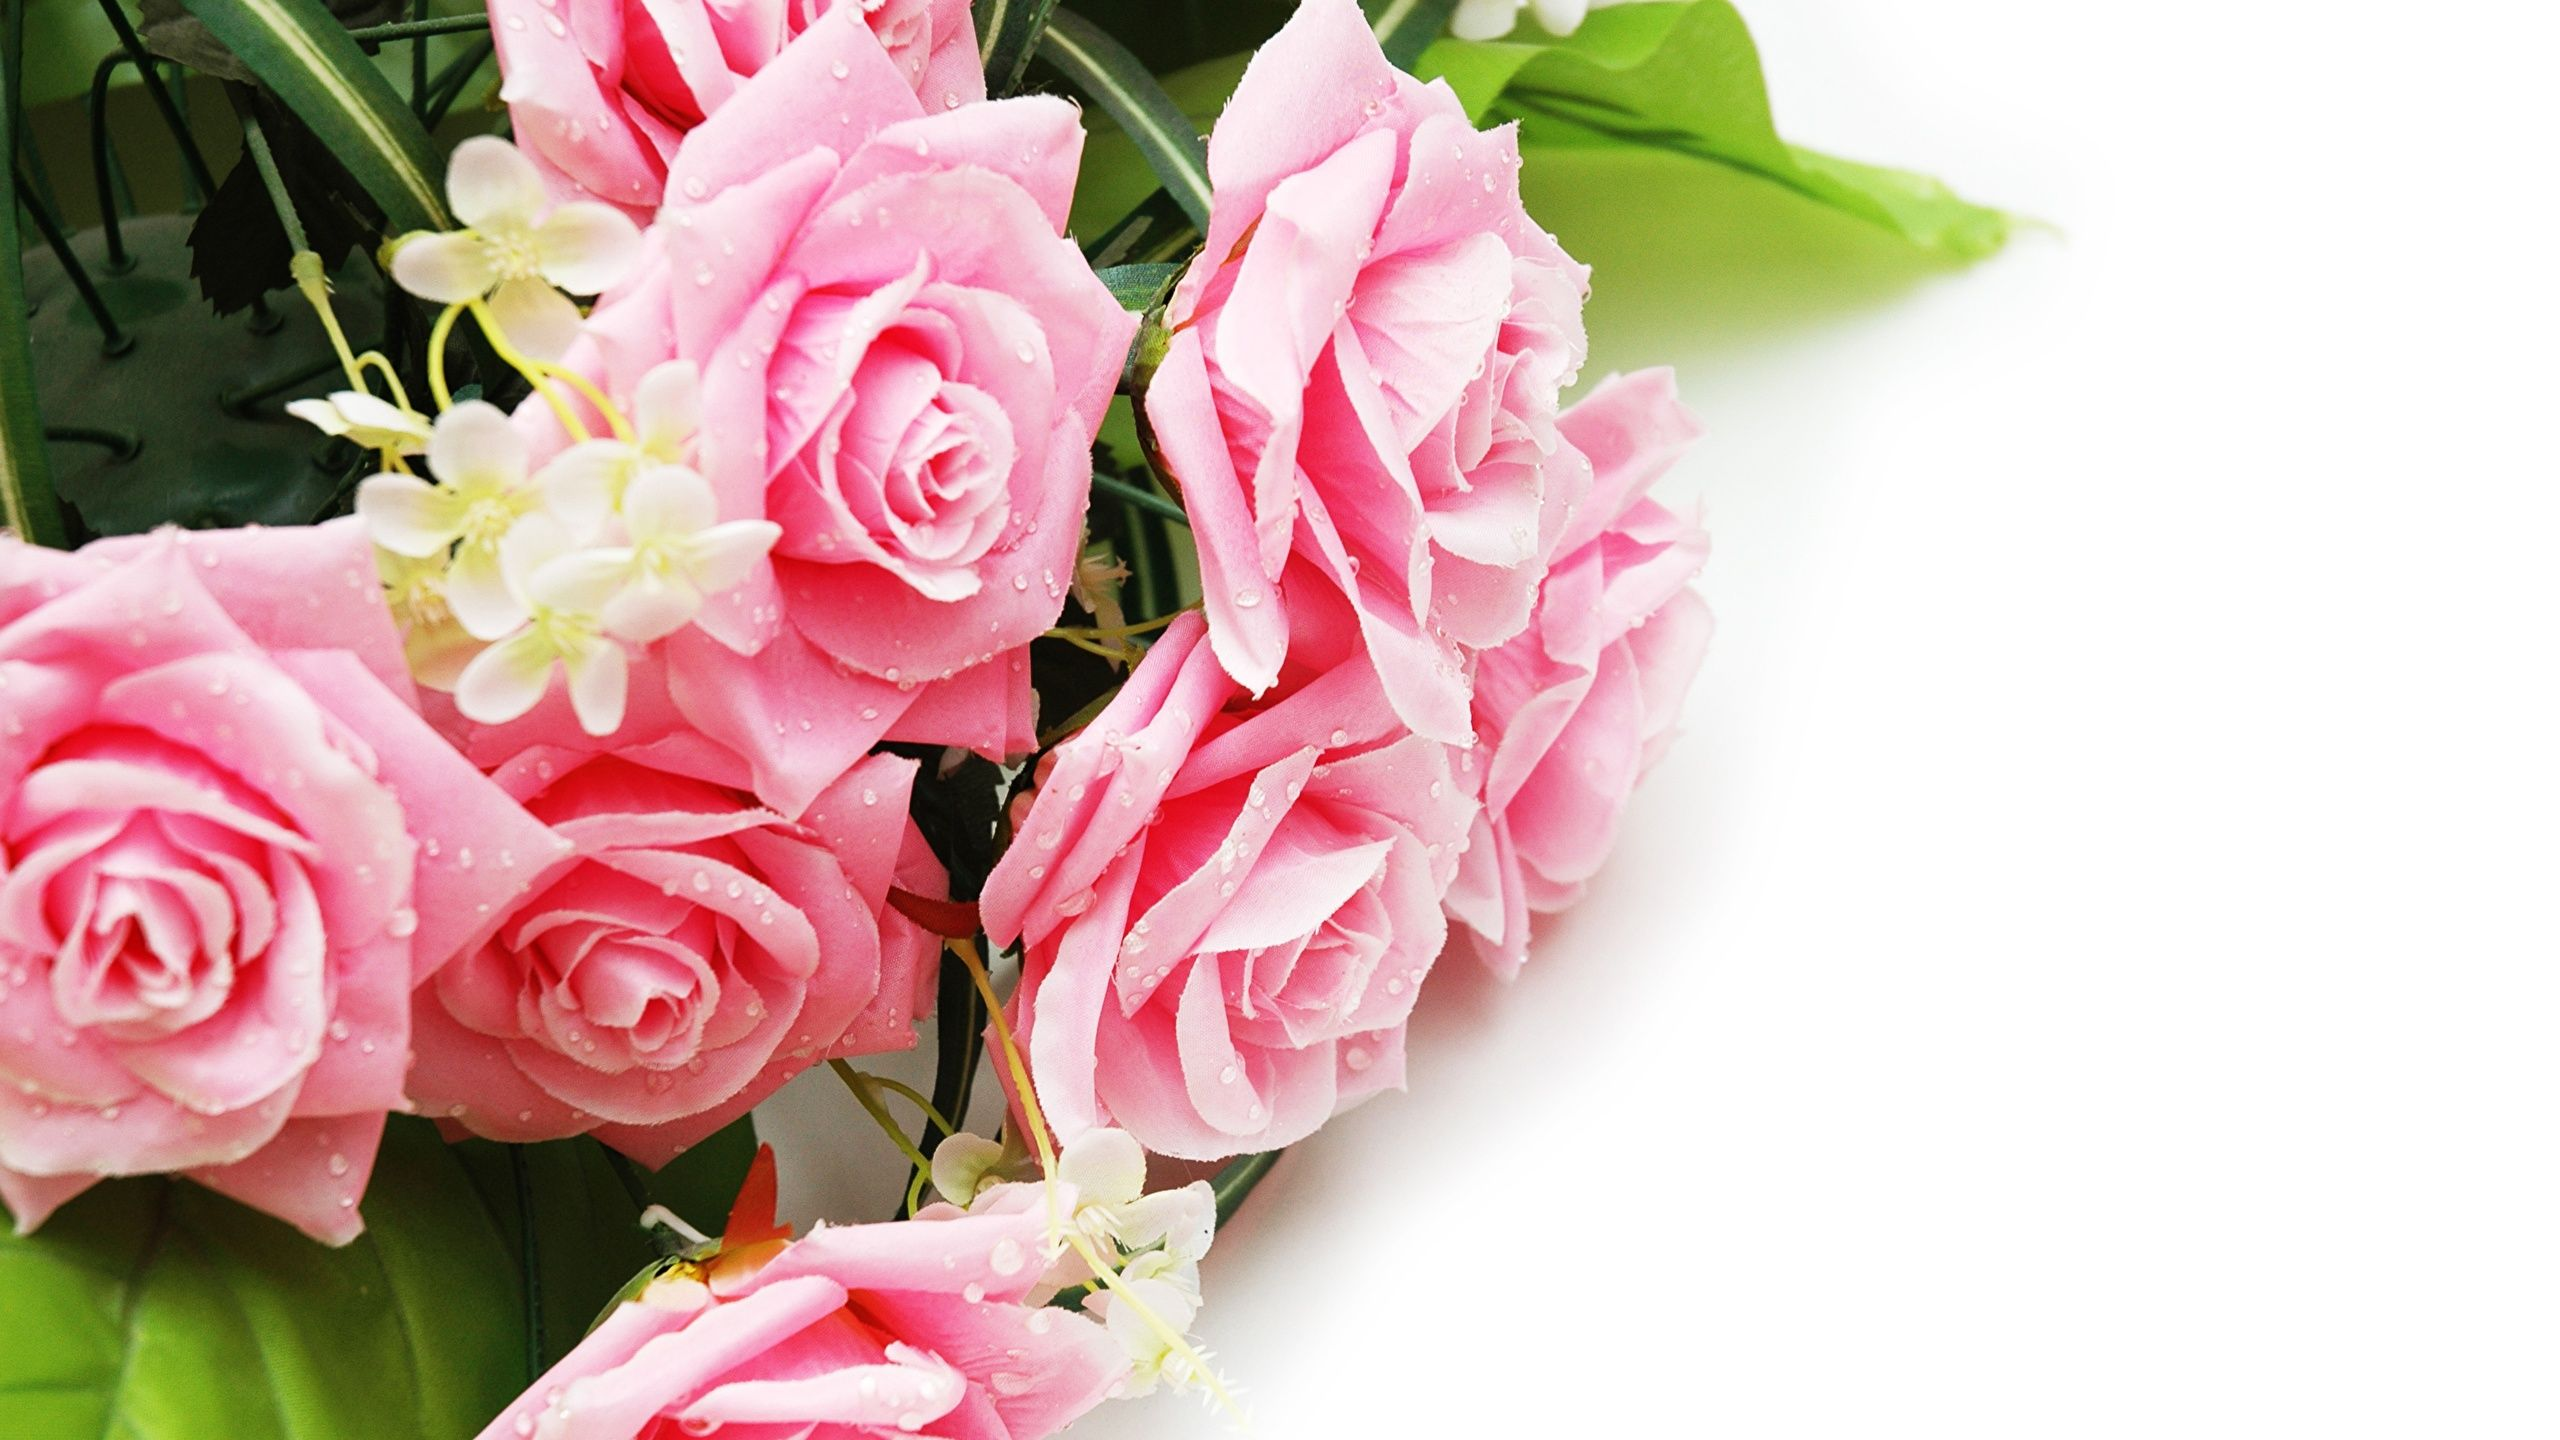 Image roses pink color flowers white background 2560x1440 rose art image roses pink color flowers white background 2560x1440 pink rose flower pink roses rose mightylinksfo